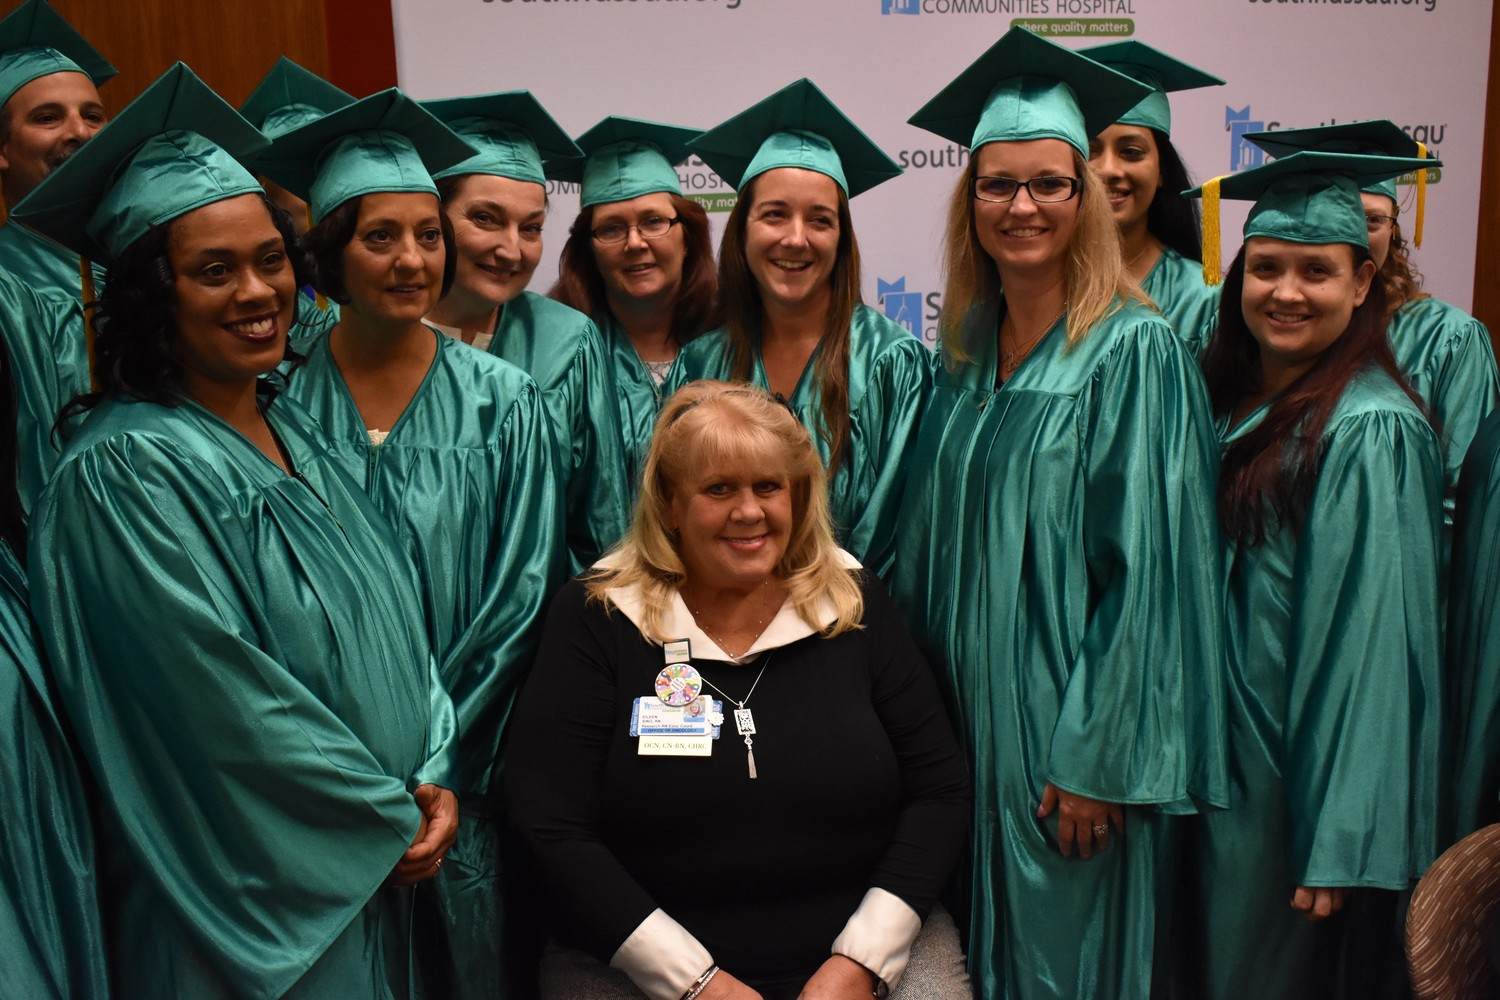 Rockville Centre resident Eileen Sino, center, who has worked with oncology patients at South Nassau Communities Hospital for 25 years, sat among nursing school graduates during a Nurses Day Celebration on May 4 after being named the hospital's Nurse of Excellence Award recipient.